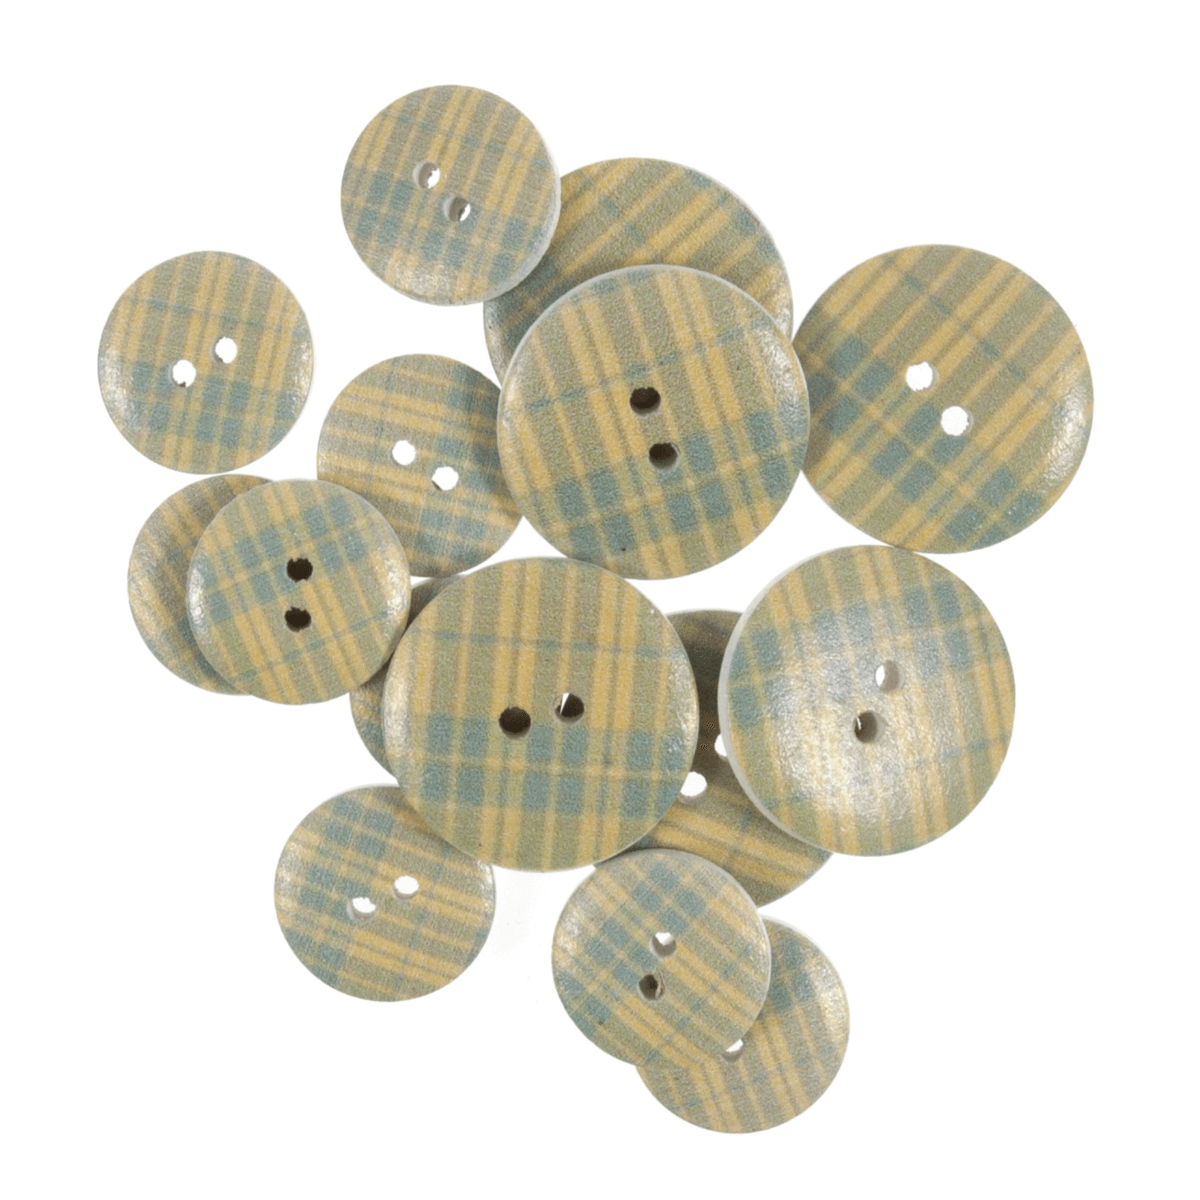 25mm 15 x Assorted Nutty Squirrel Wooden Craft Buttons 18mm